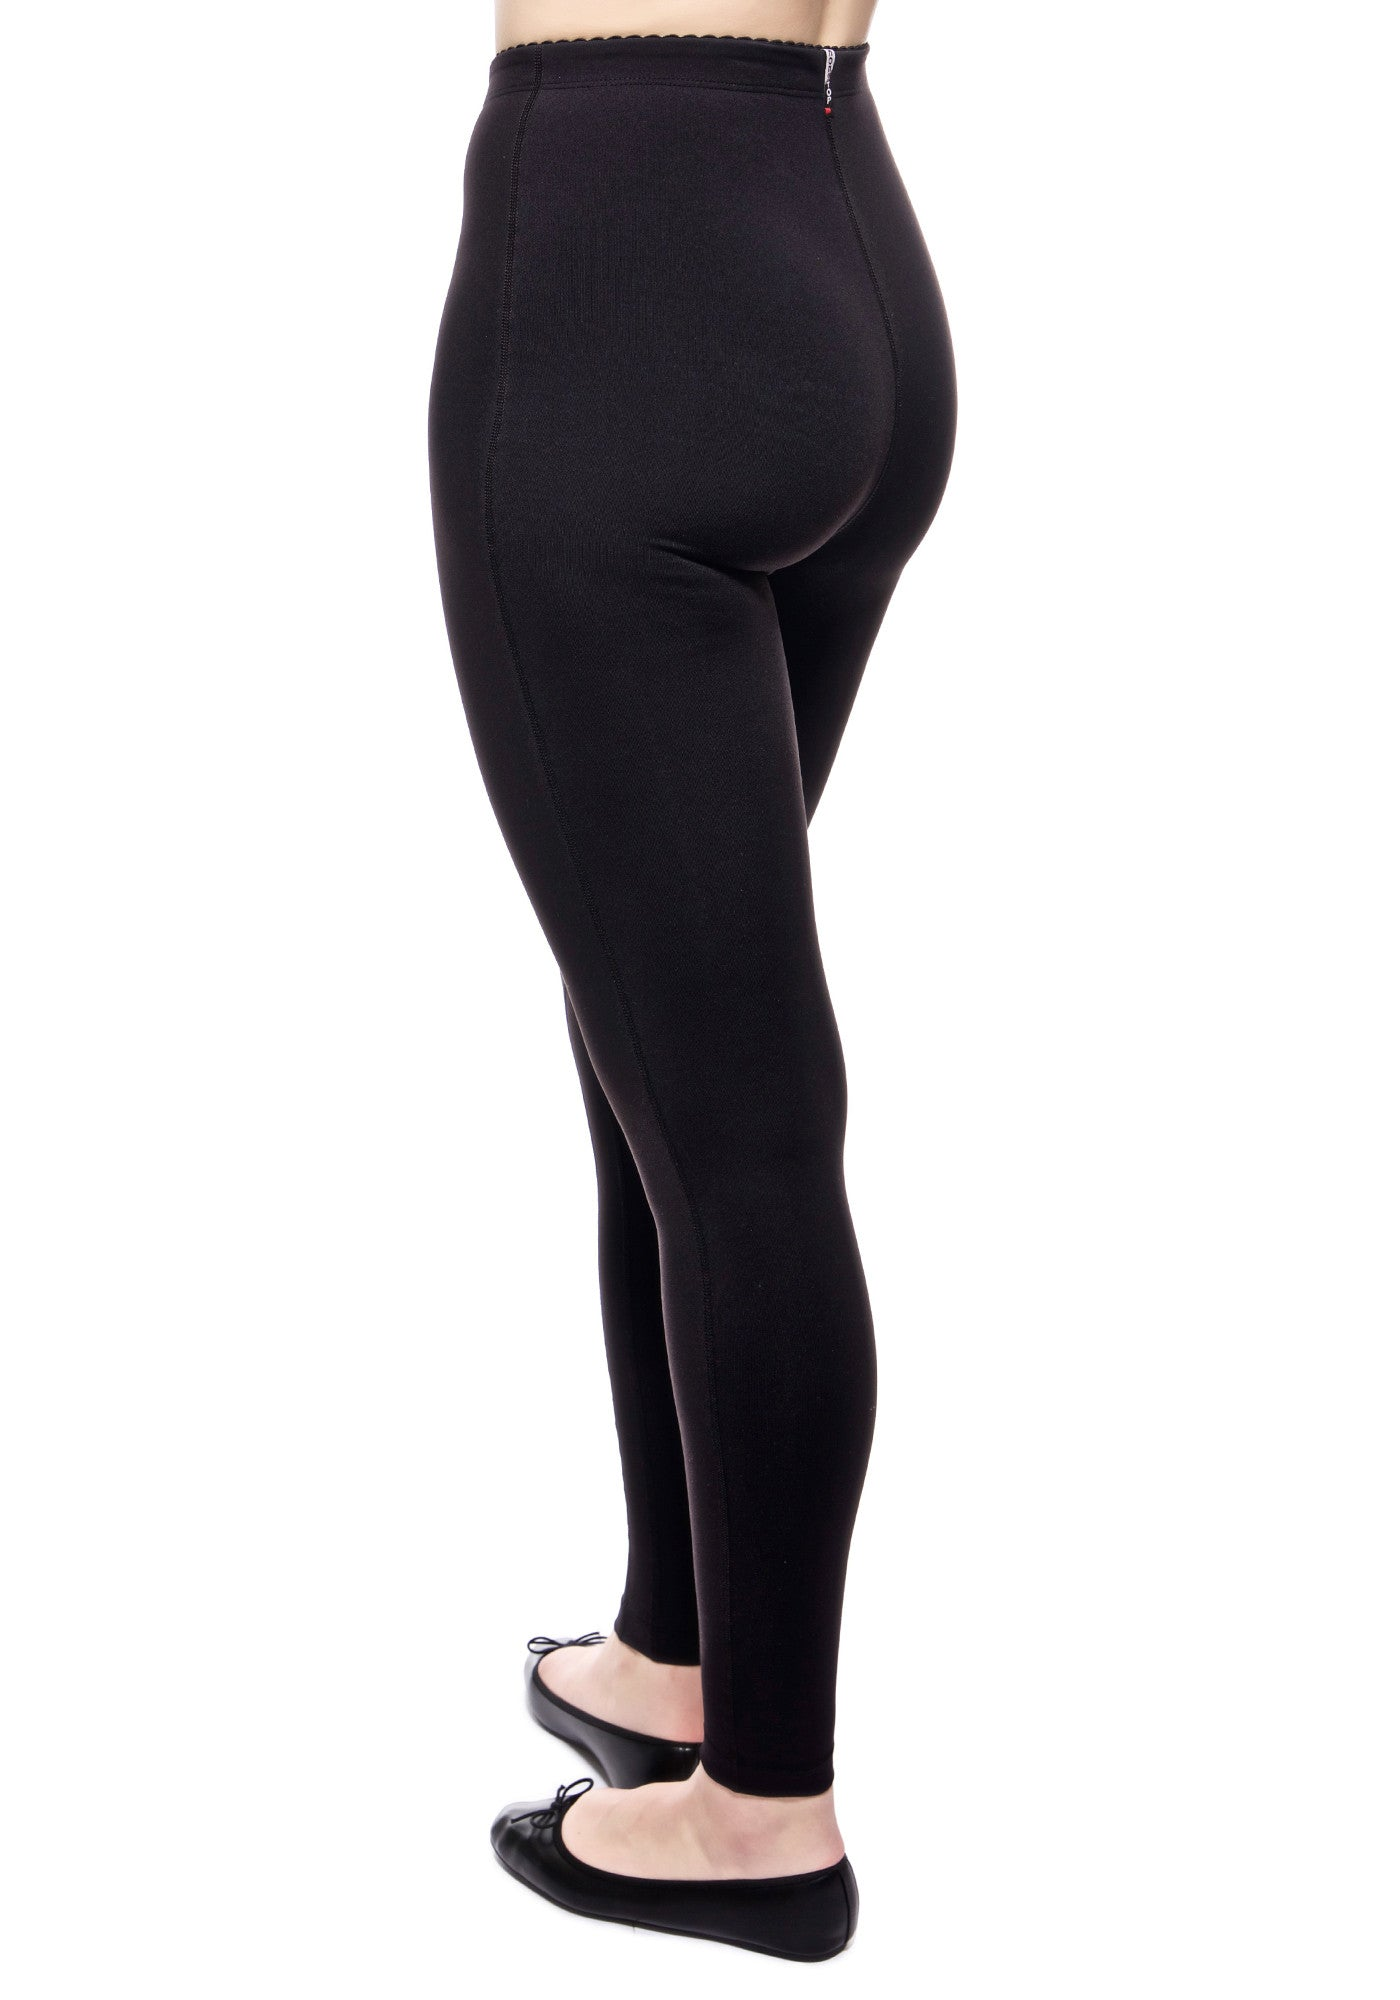 Back view of our high waisted legging in Black with hidden drawstring at waist.